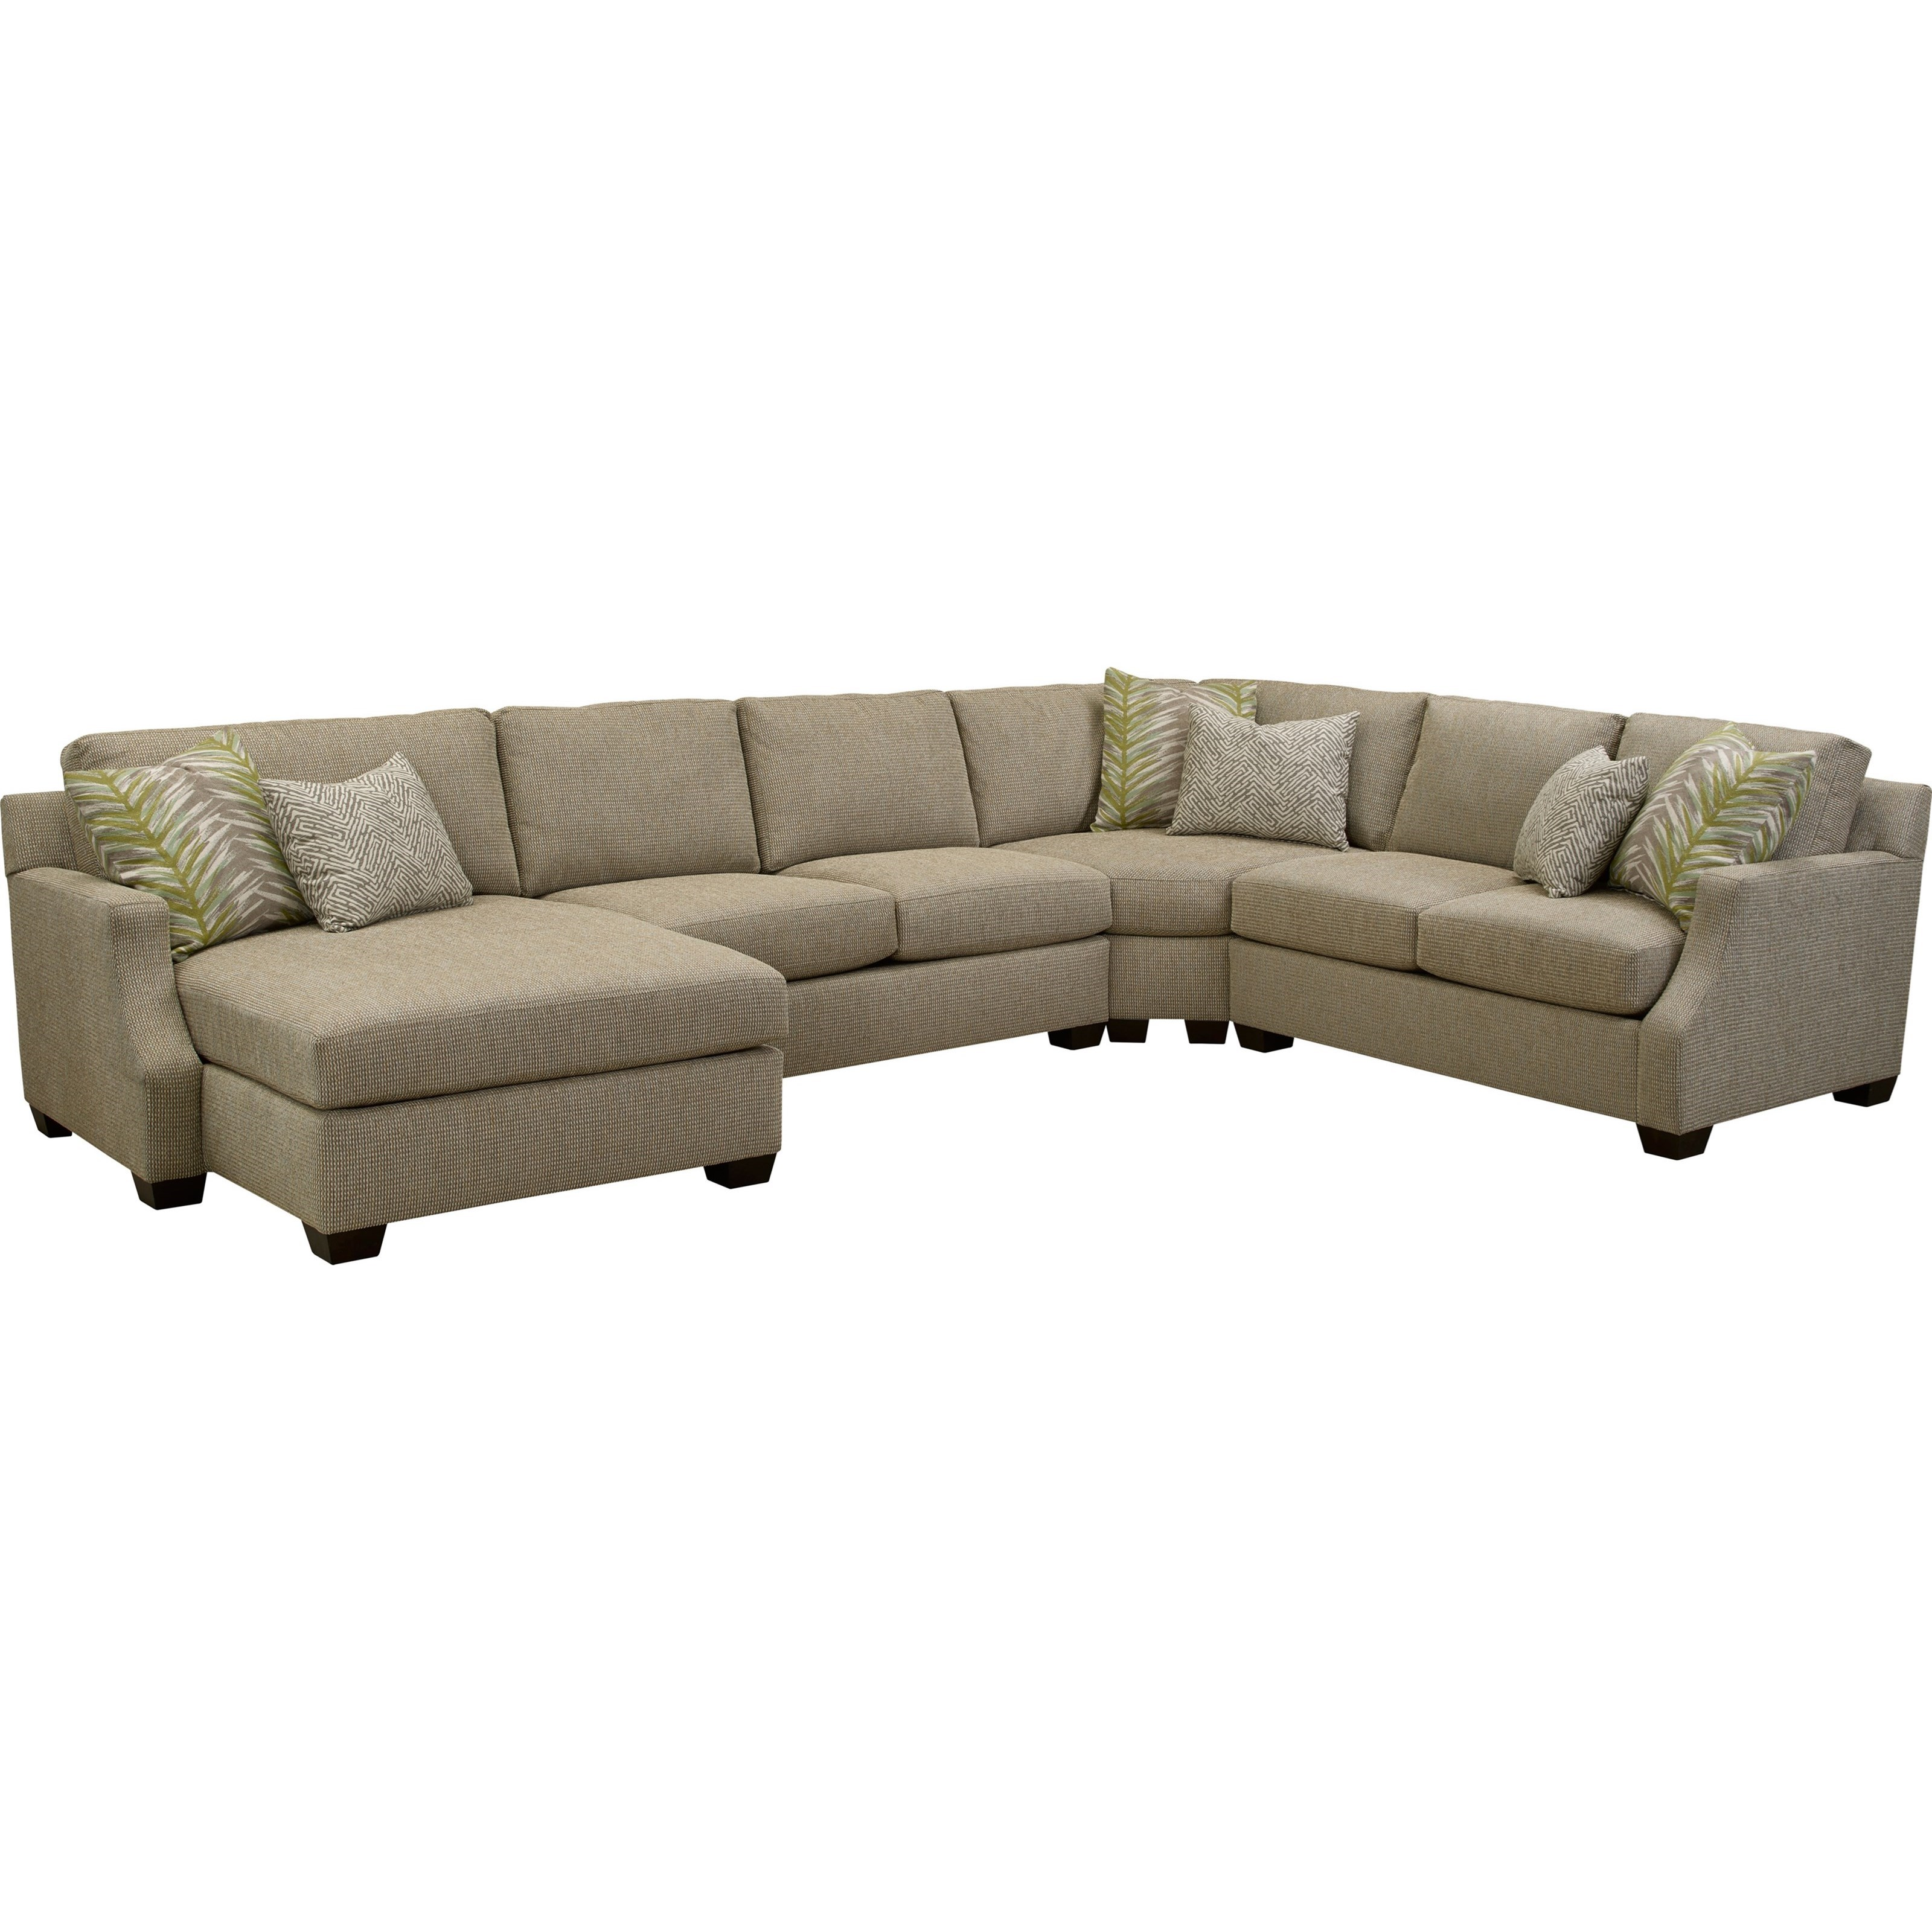 Broyhill furniture chambers large 4 pc sectional sofa for 4 pcs sectional sofa